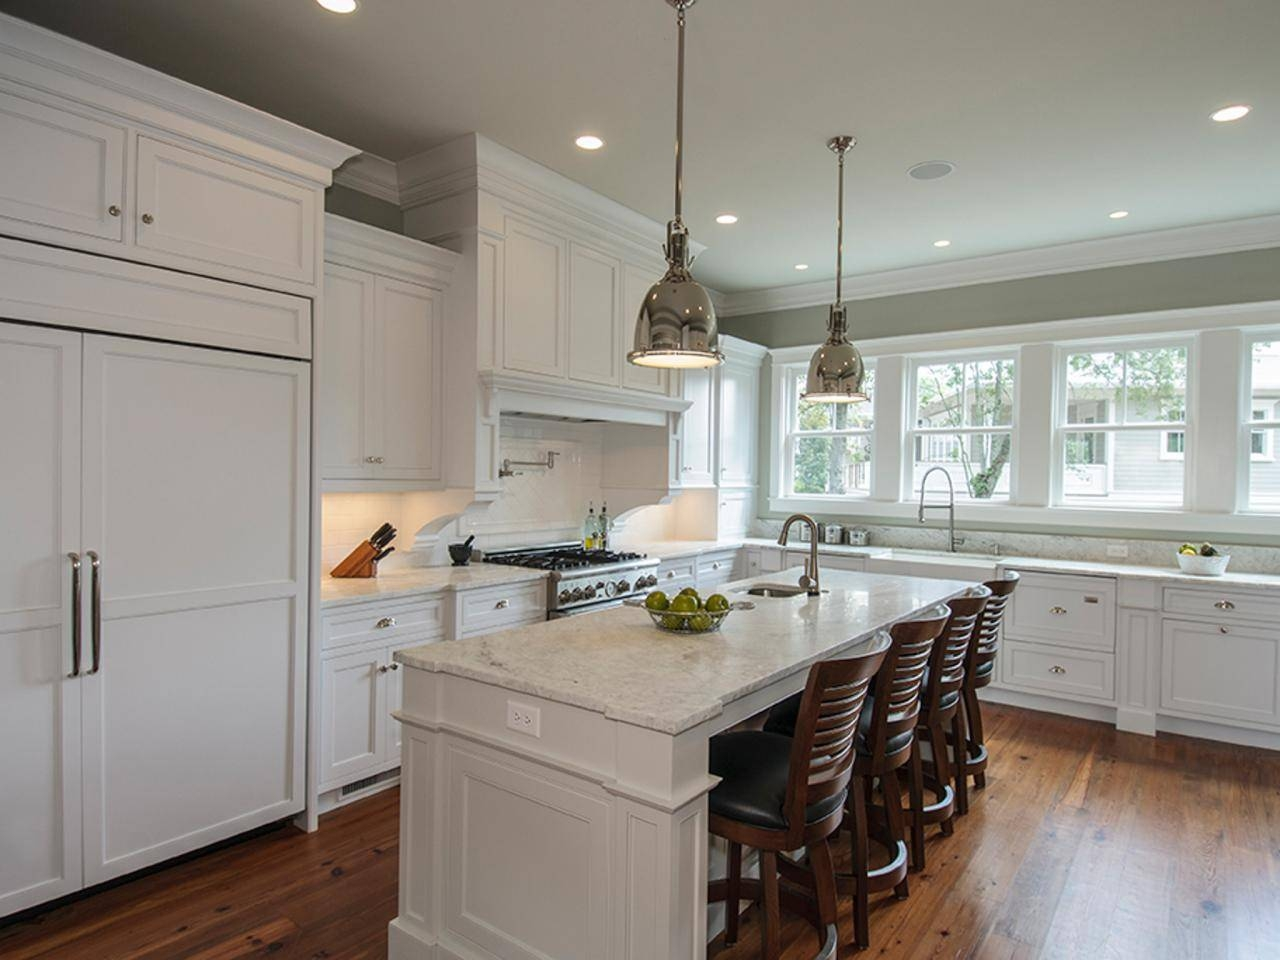 Stainless Steel Pendant Lights - Baby-Exit in Stainless Steel Kitchen Lights (Image 15 of 15)